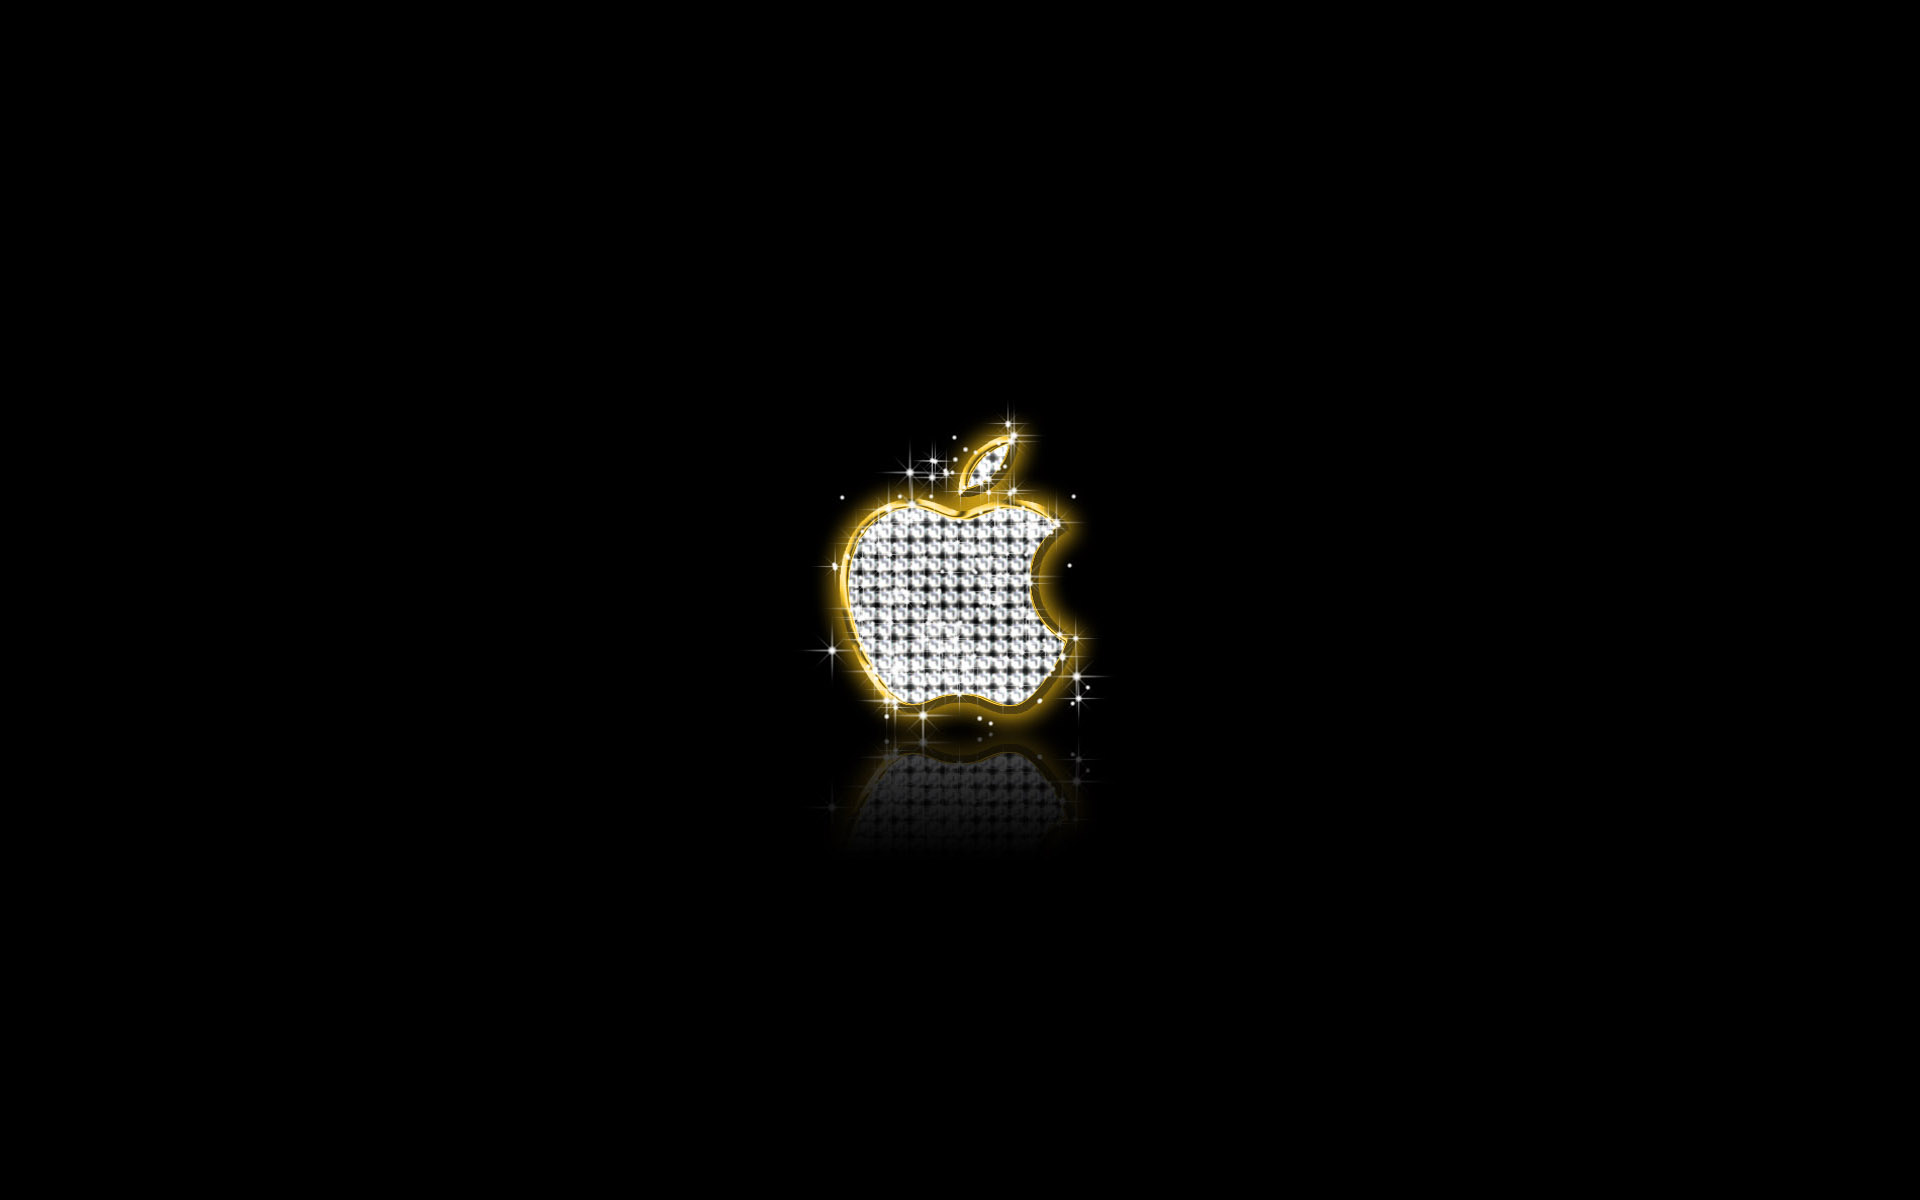 wallpapers 4k-hd Apple-alegorias.es (21)